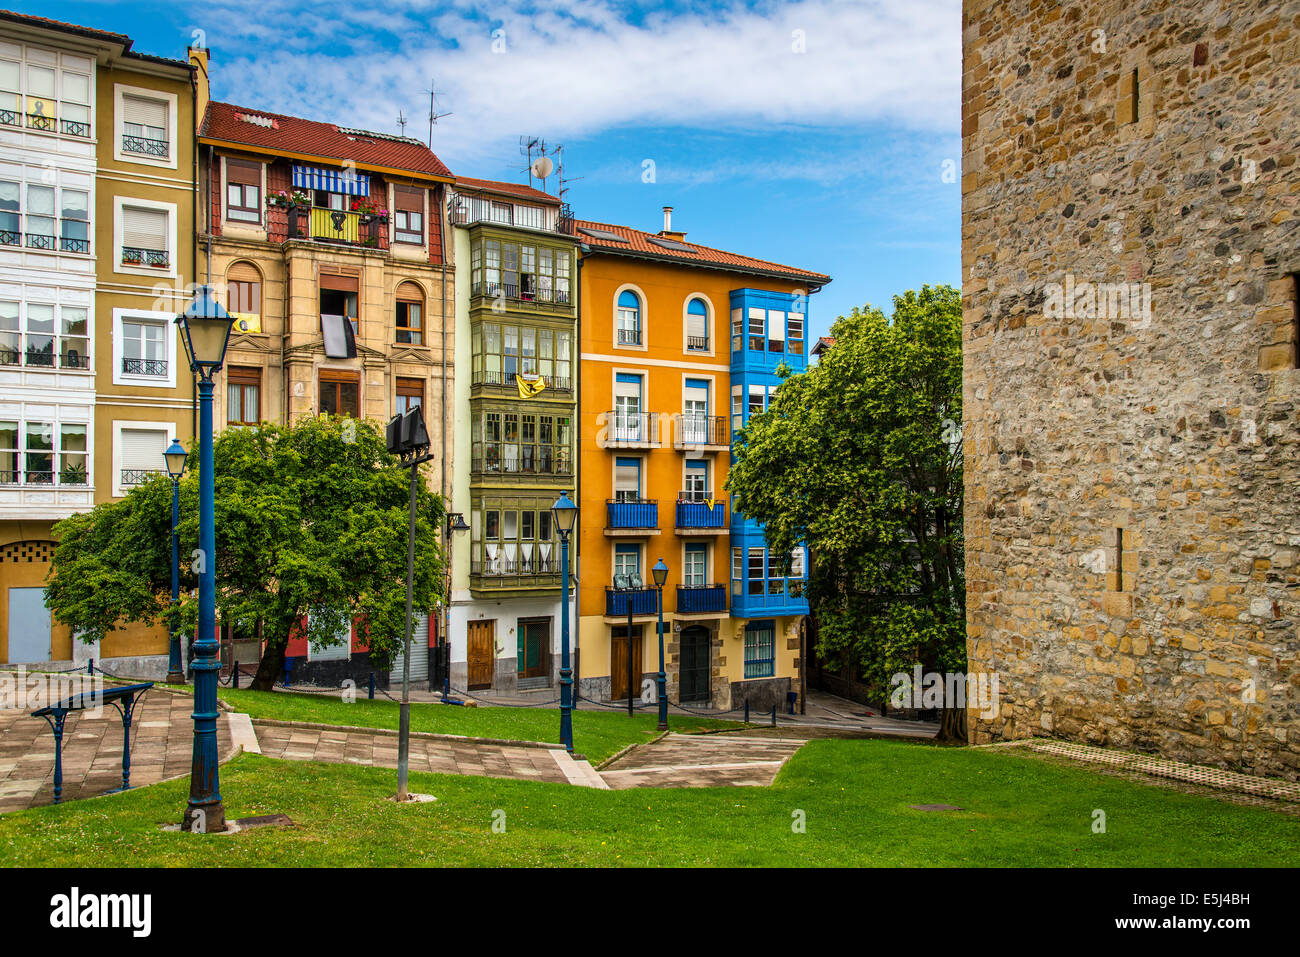 Colorful houses in the town of Portugalete, Biscay, Basque Country, Spain - Stock Image